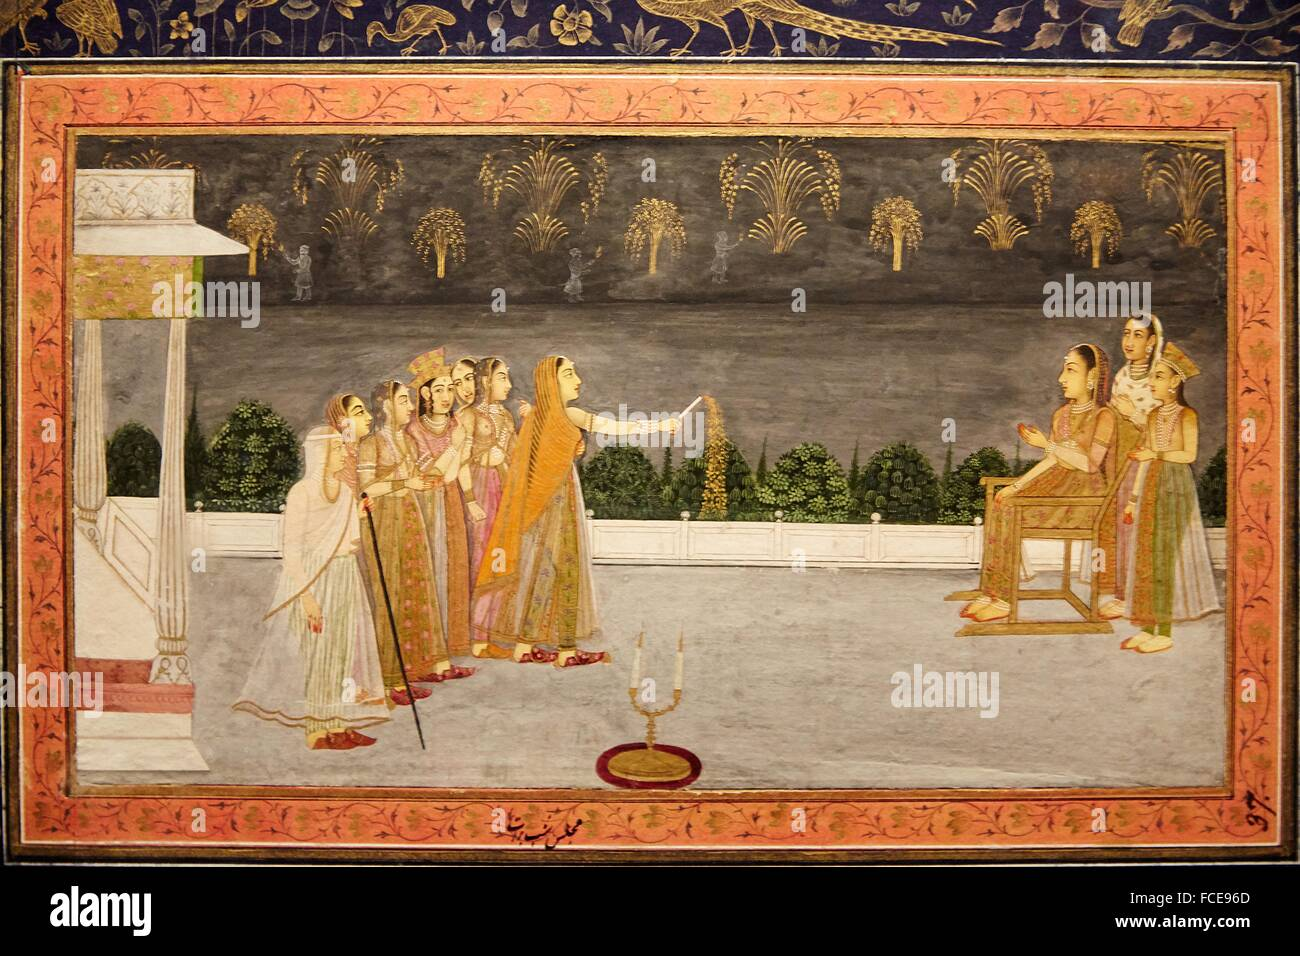 mughal miniature painting islamic art india pergamon museum stock photo 93742277 alamy. Black Bedroom Furniture Sets. Home Design Ideas